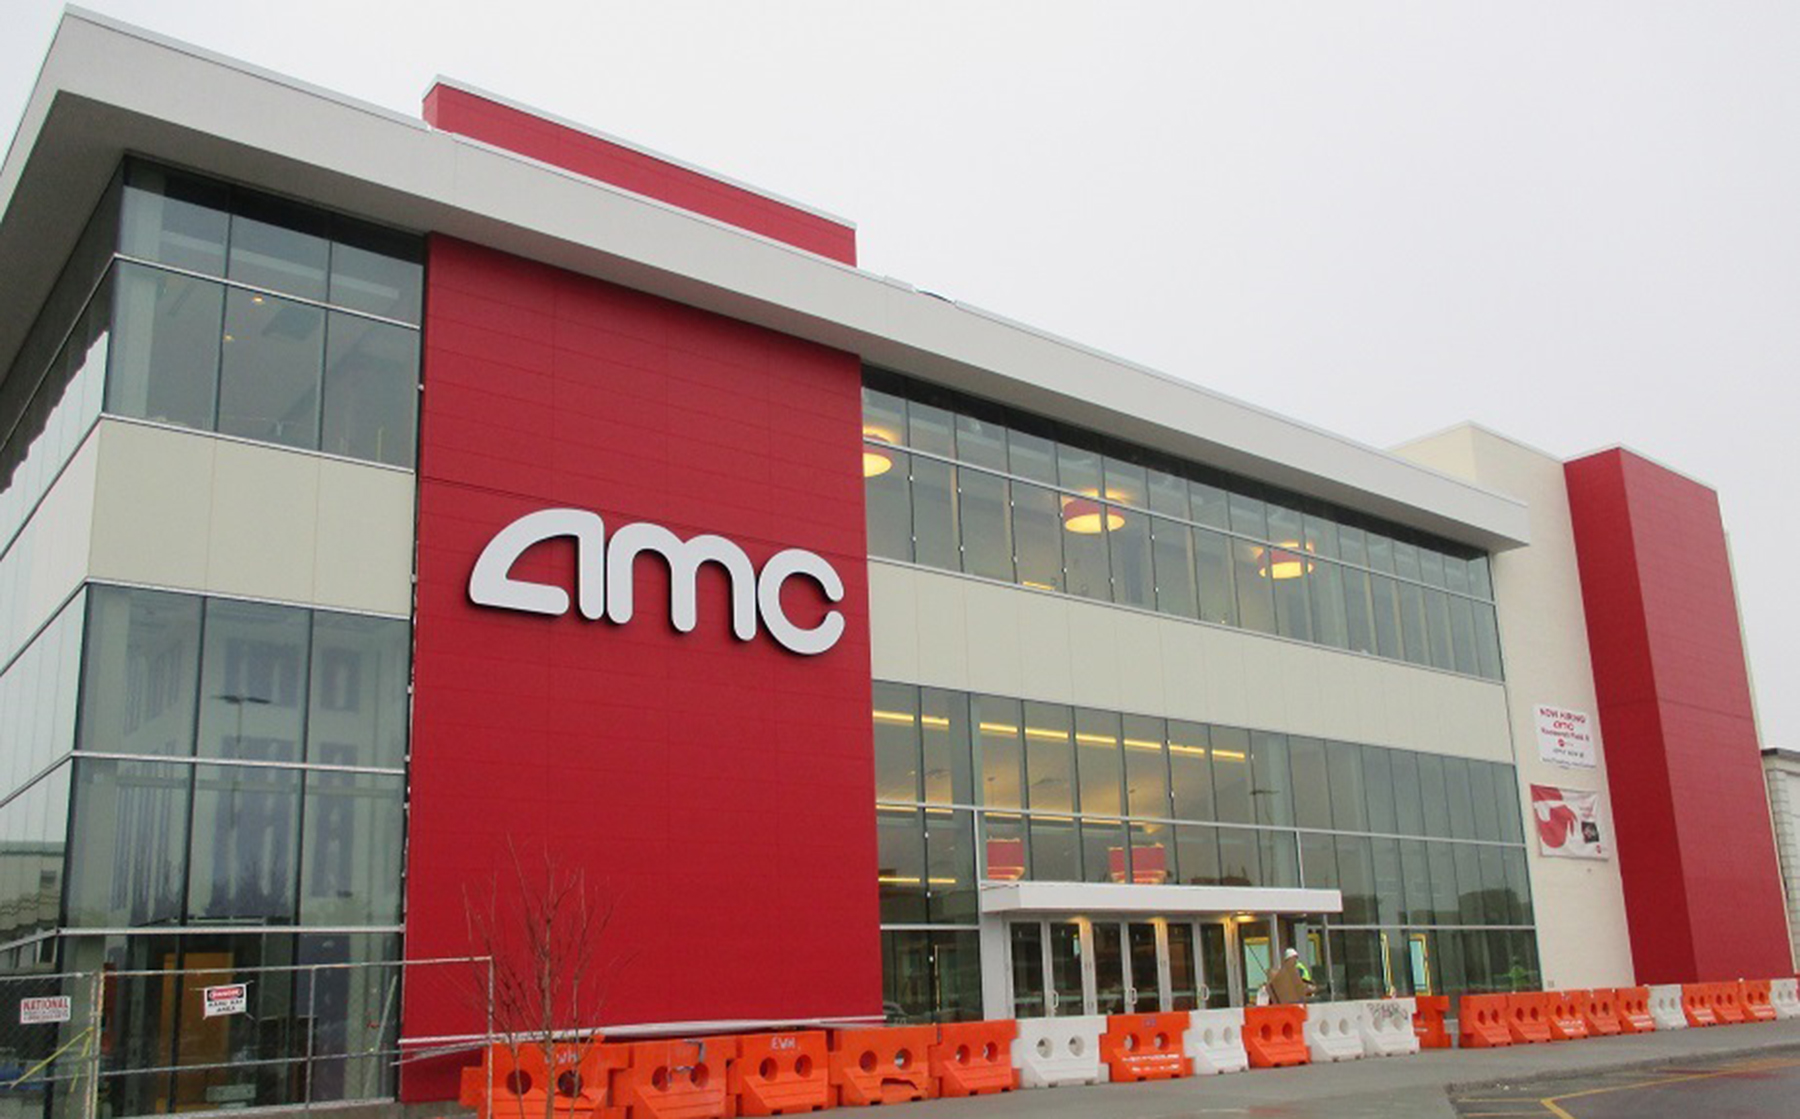 E W Howell Completes Renovation Of 43 756 S F Amc Movie Theater Project Cost Was 12 Million